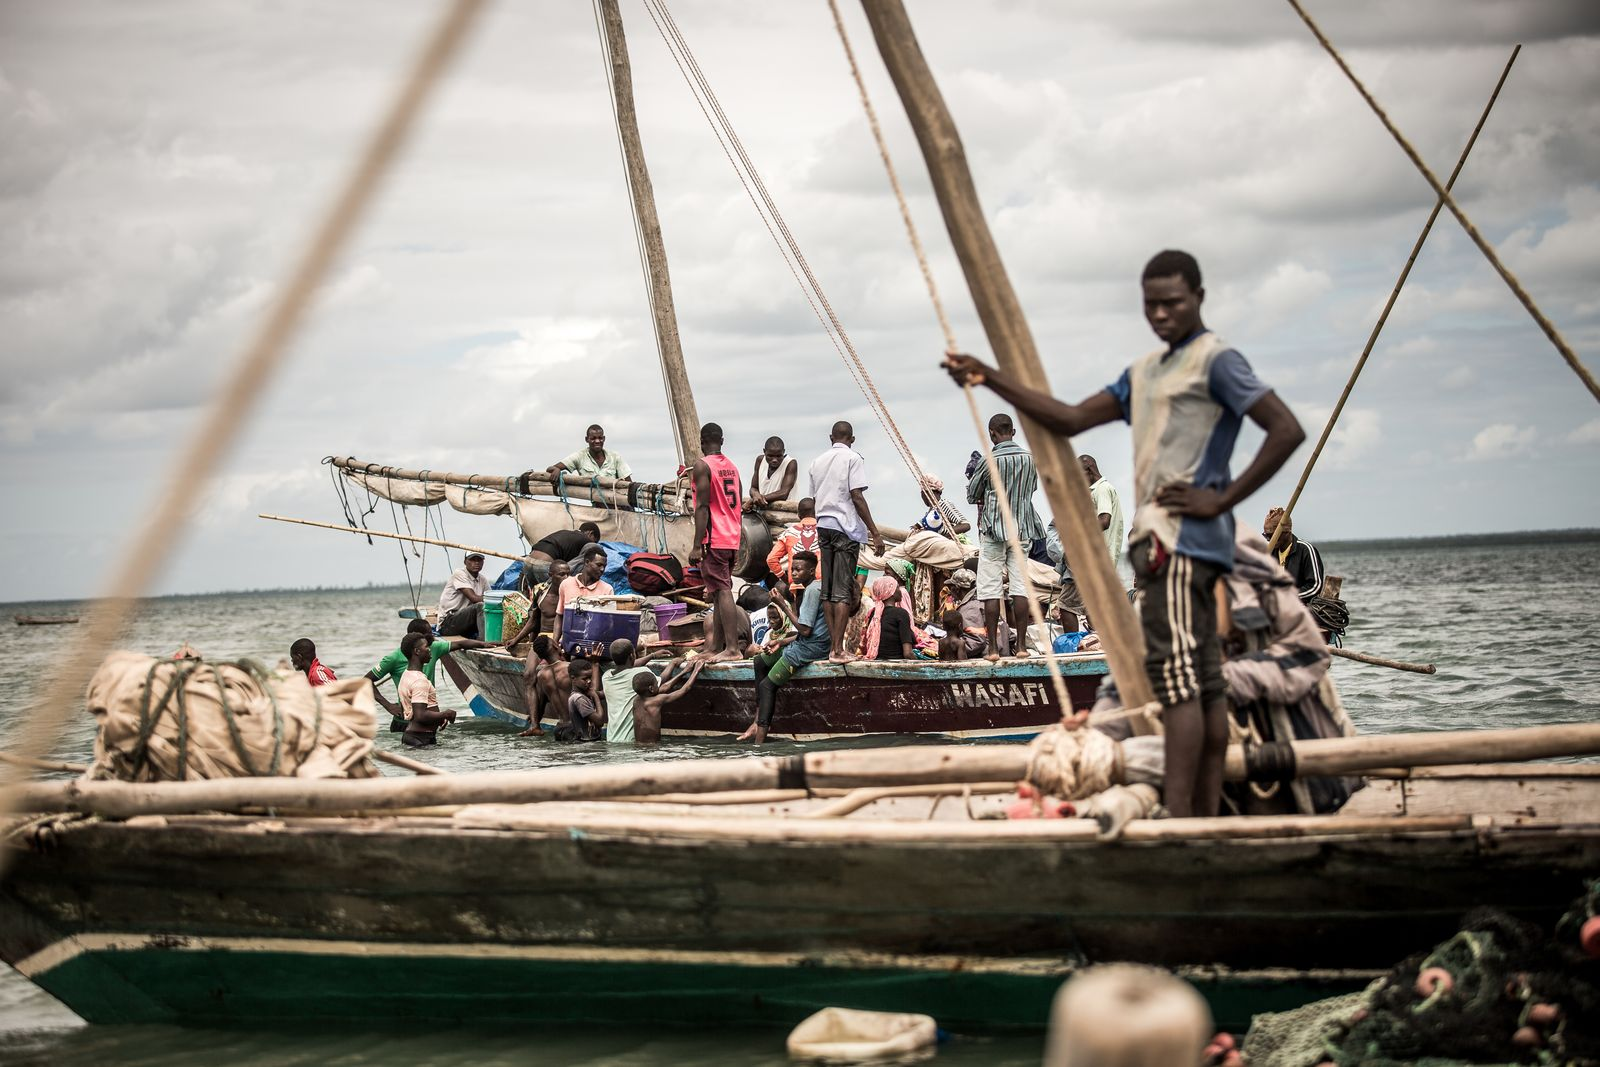 CWerner_Mozambique-78